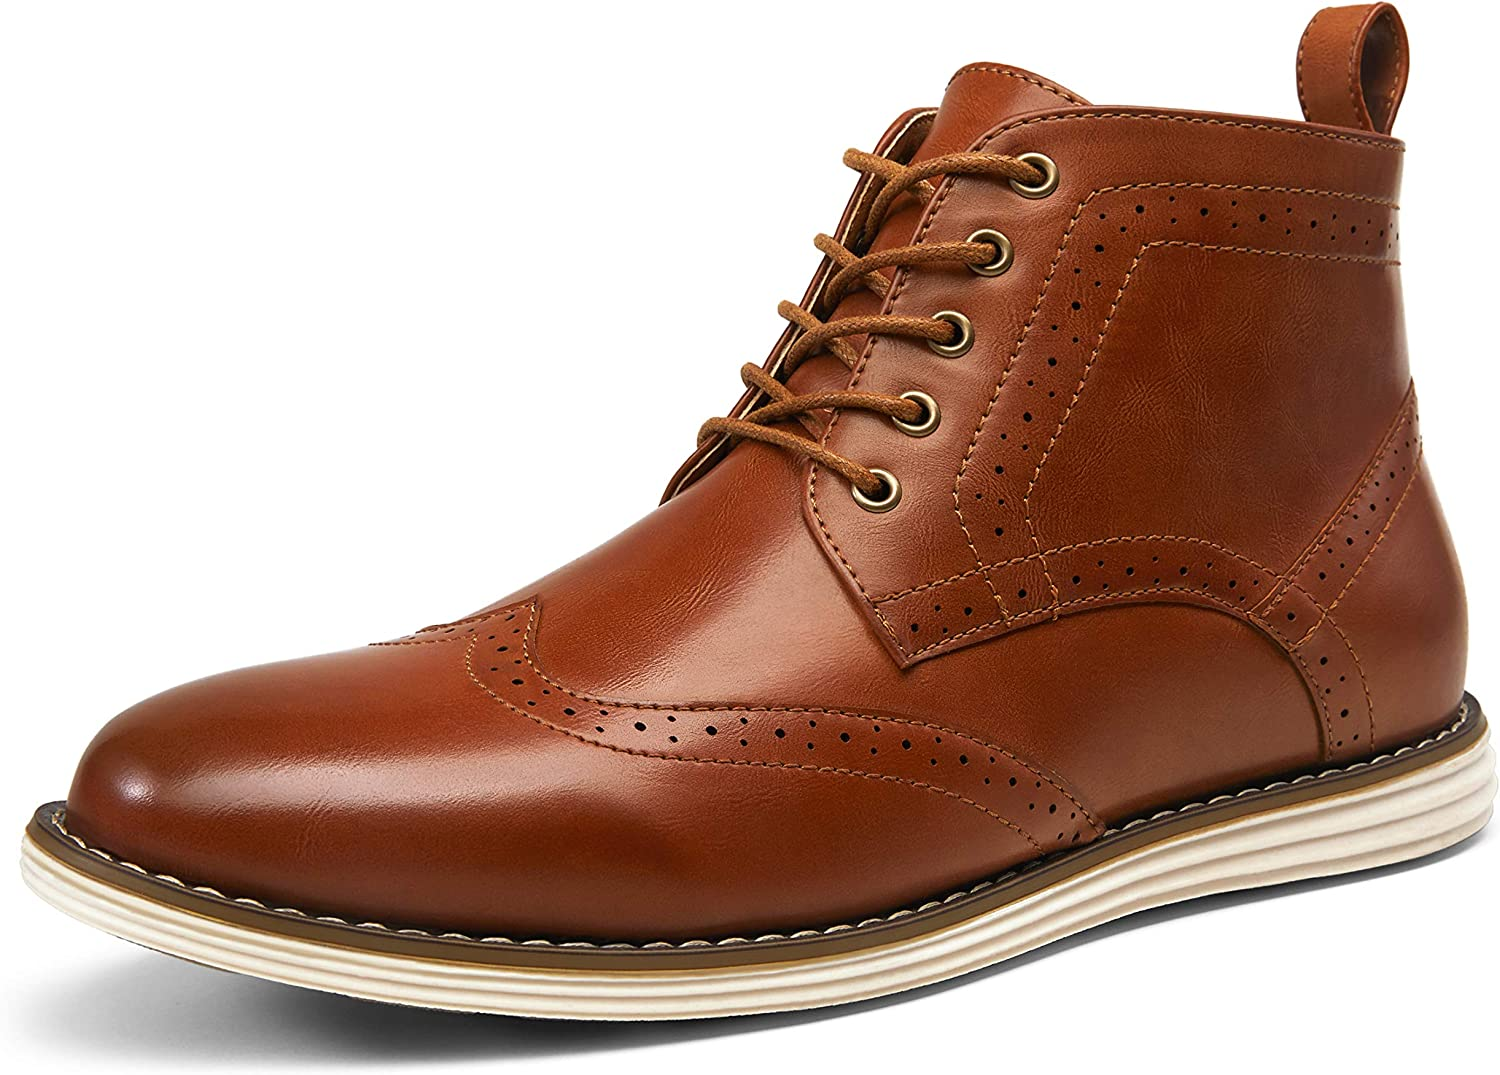 Vostey Men's Chukka Boots Motorcycle Casual Hiking Boot for Men